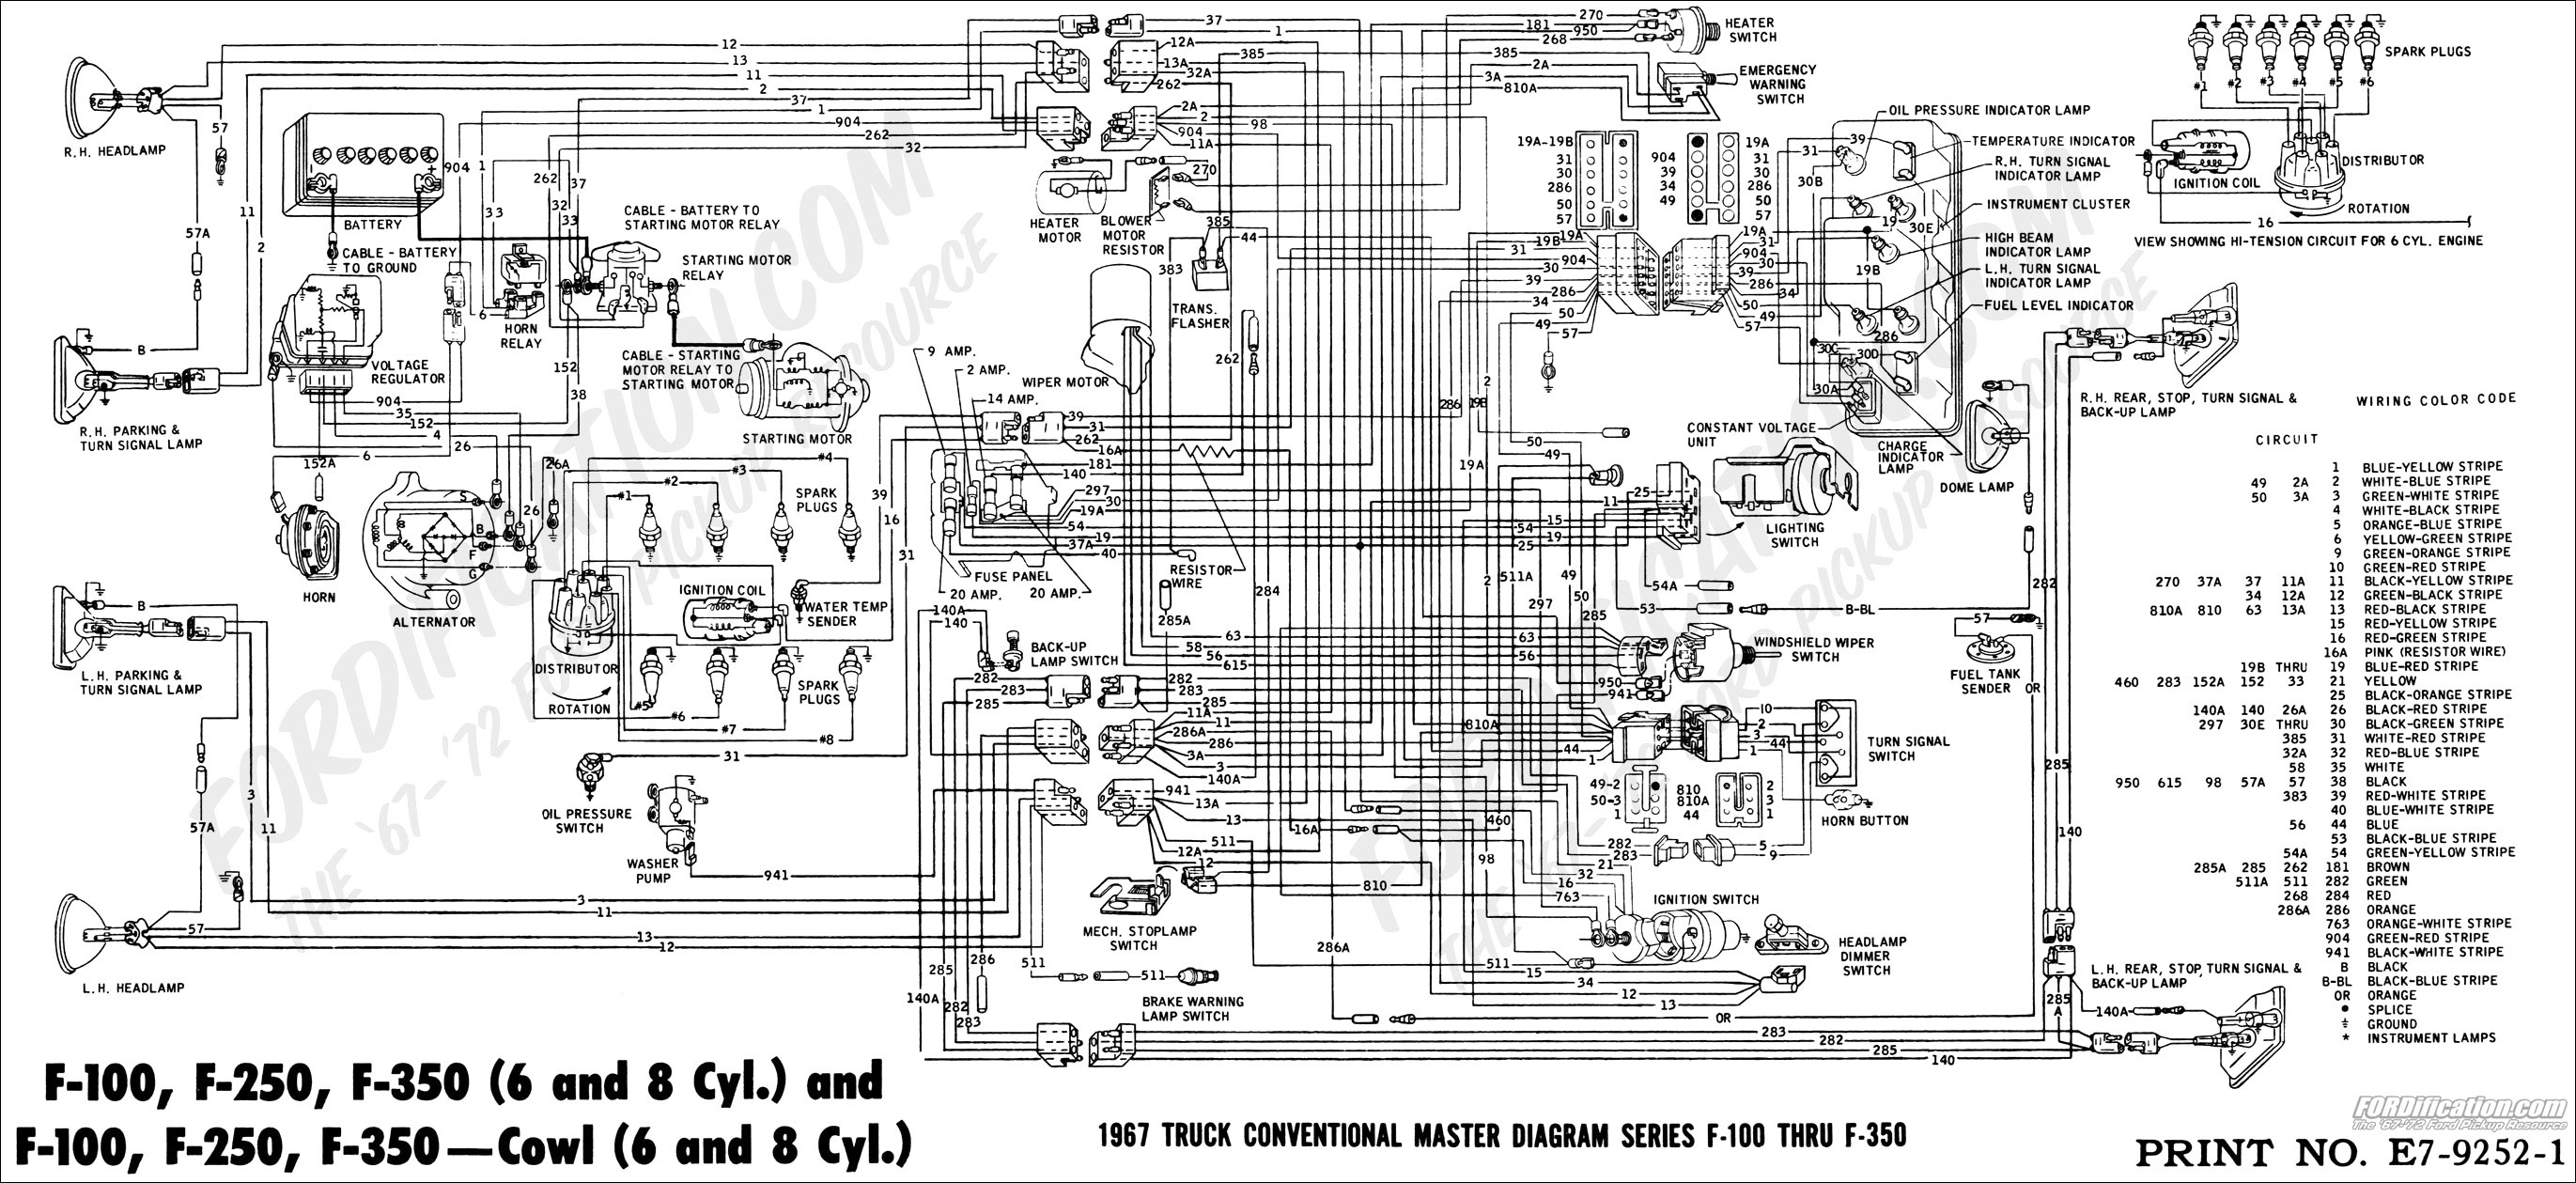 Ford F150 Wiring Schematic Wiring Diagrams Schematics